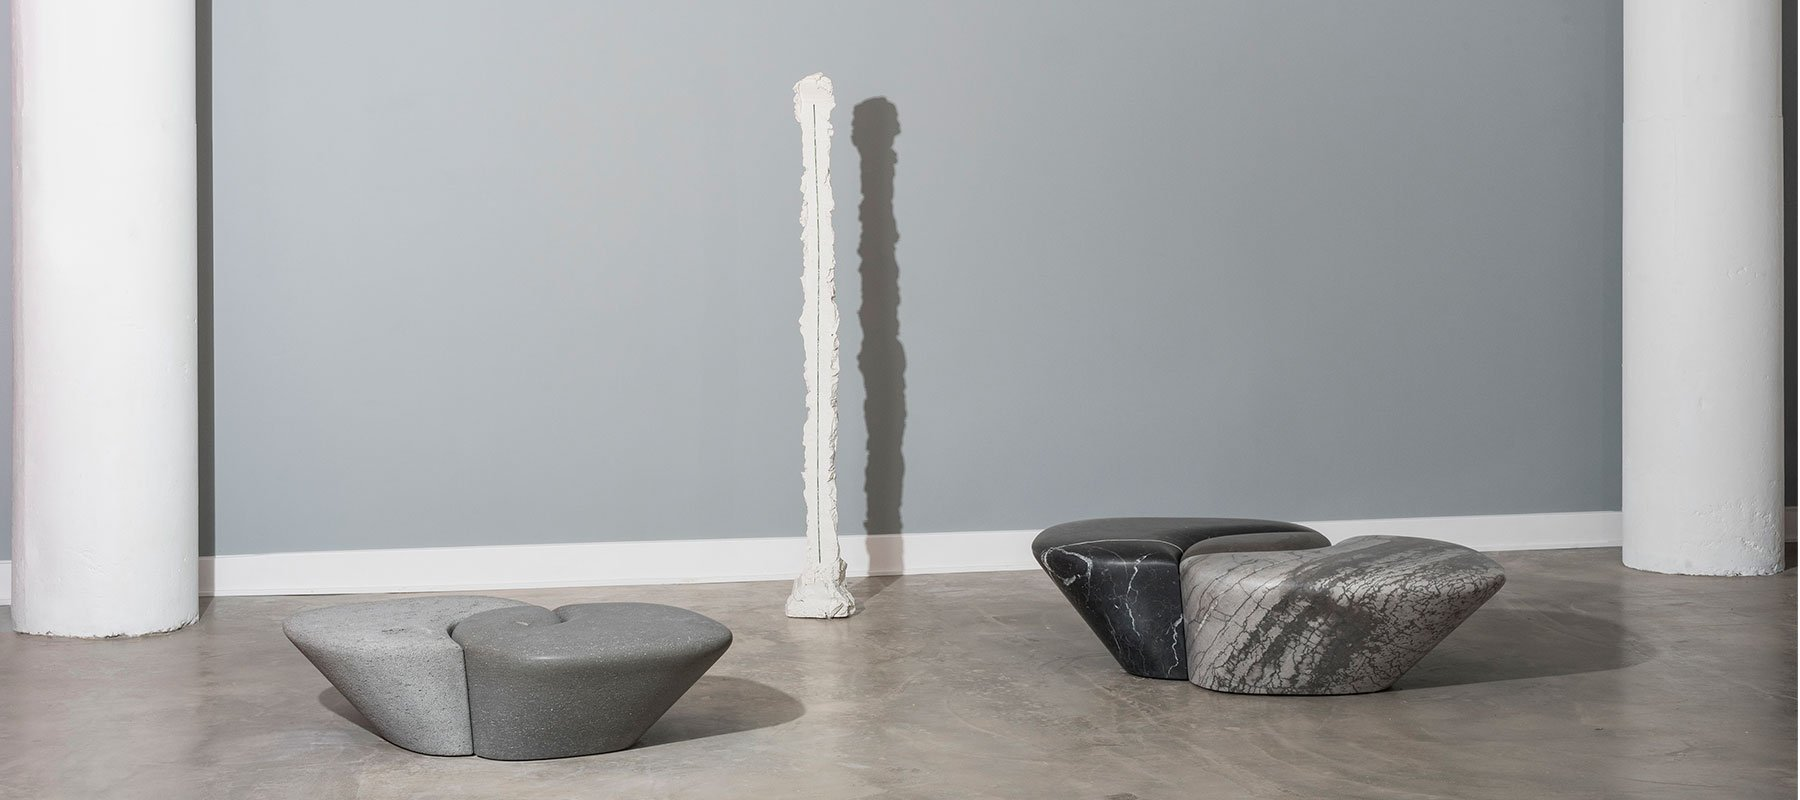 Intravedo sculpture by Paolo Icaro and two marble benches by Philippe Nigro at Casati Gallery